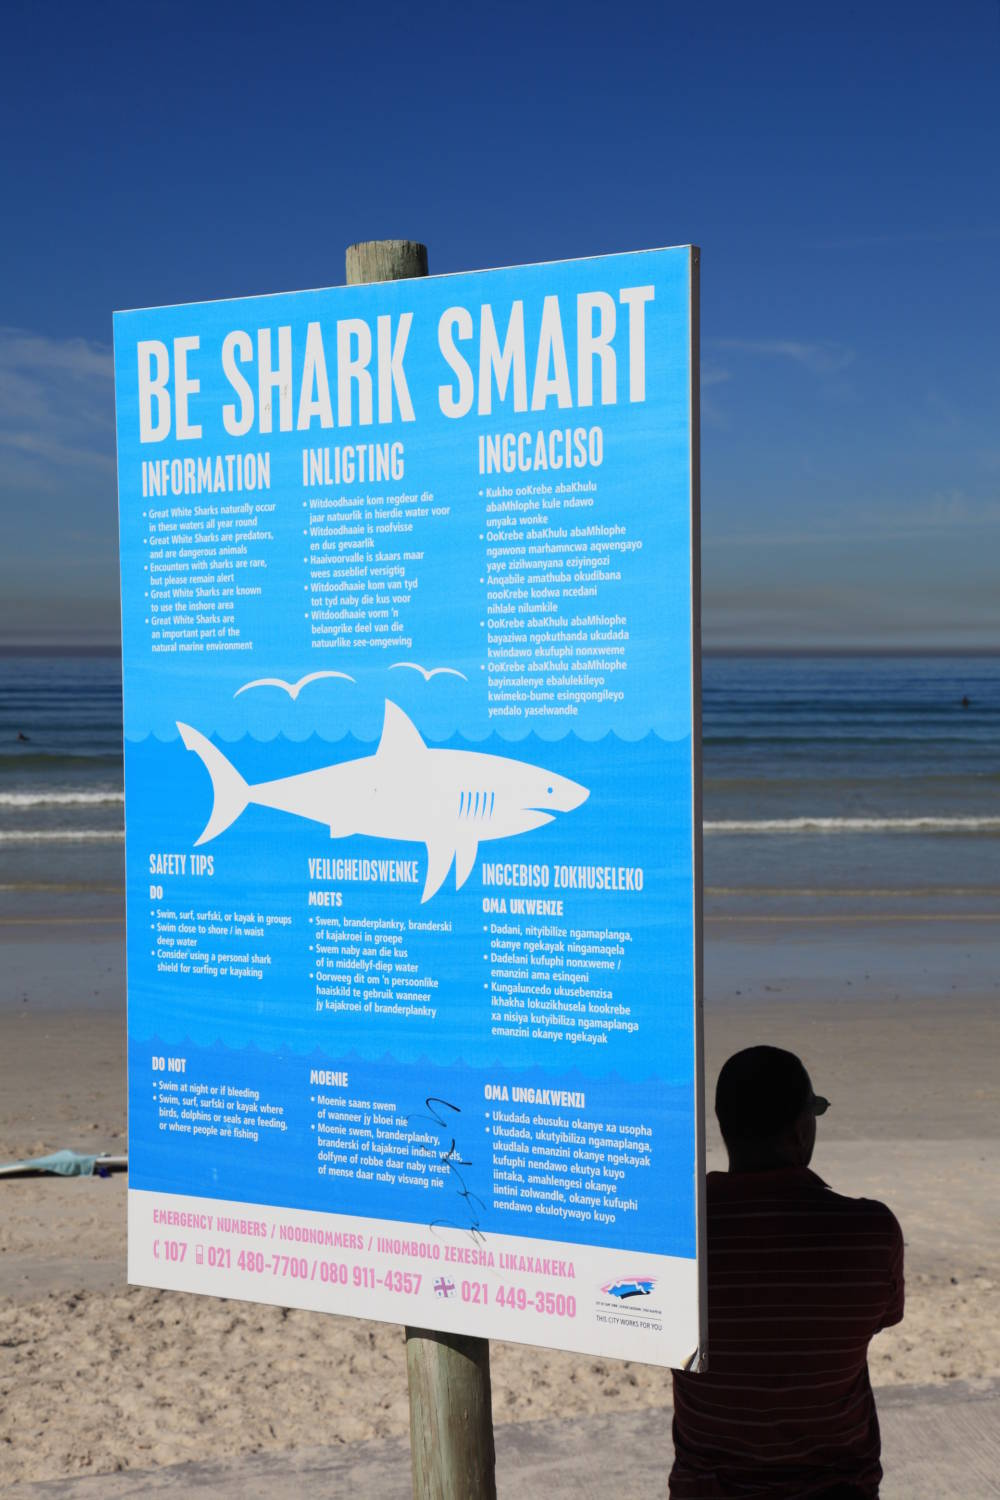 South Africa, Muizenberg, Surfers Corner. Information about white sharks.